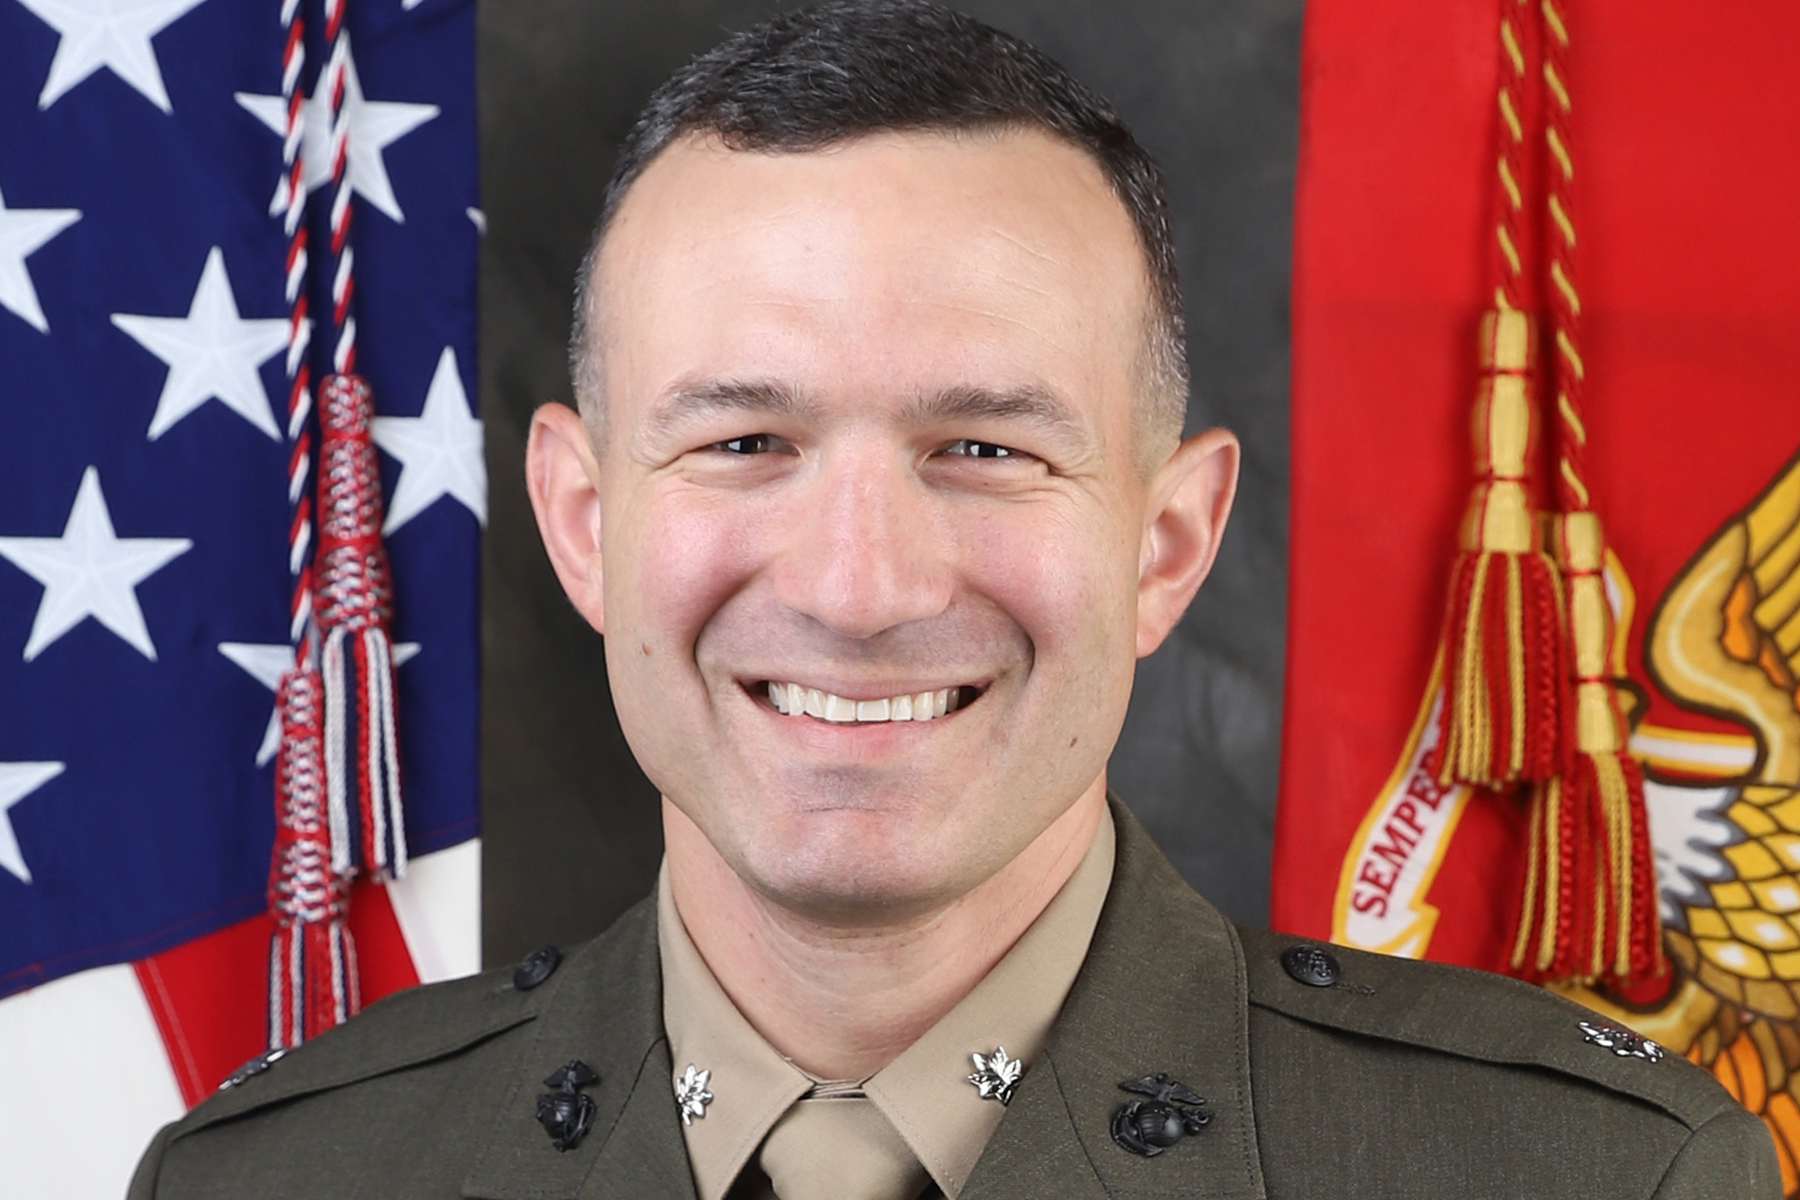 Marine Battalion Landing Team Commander Fired Following Deadly AAV Mishap